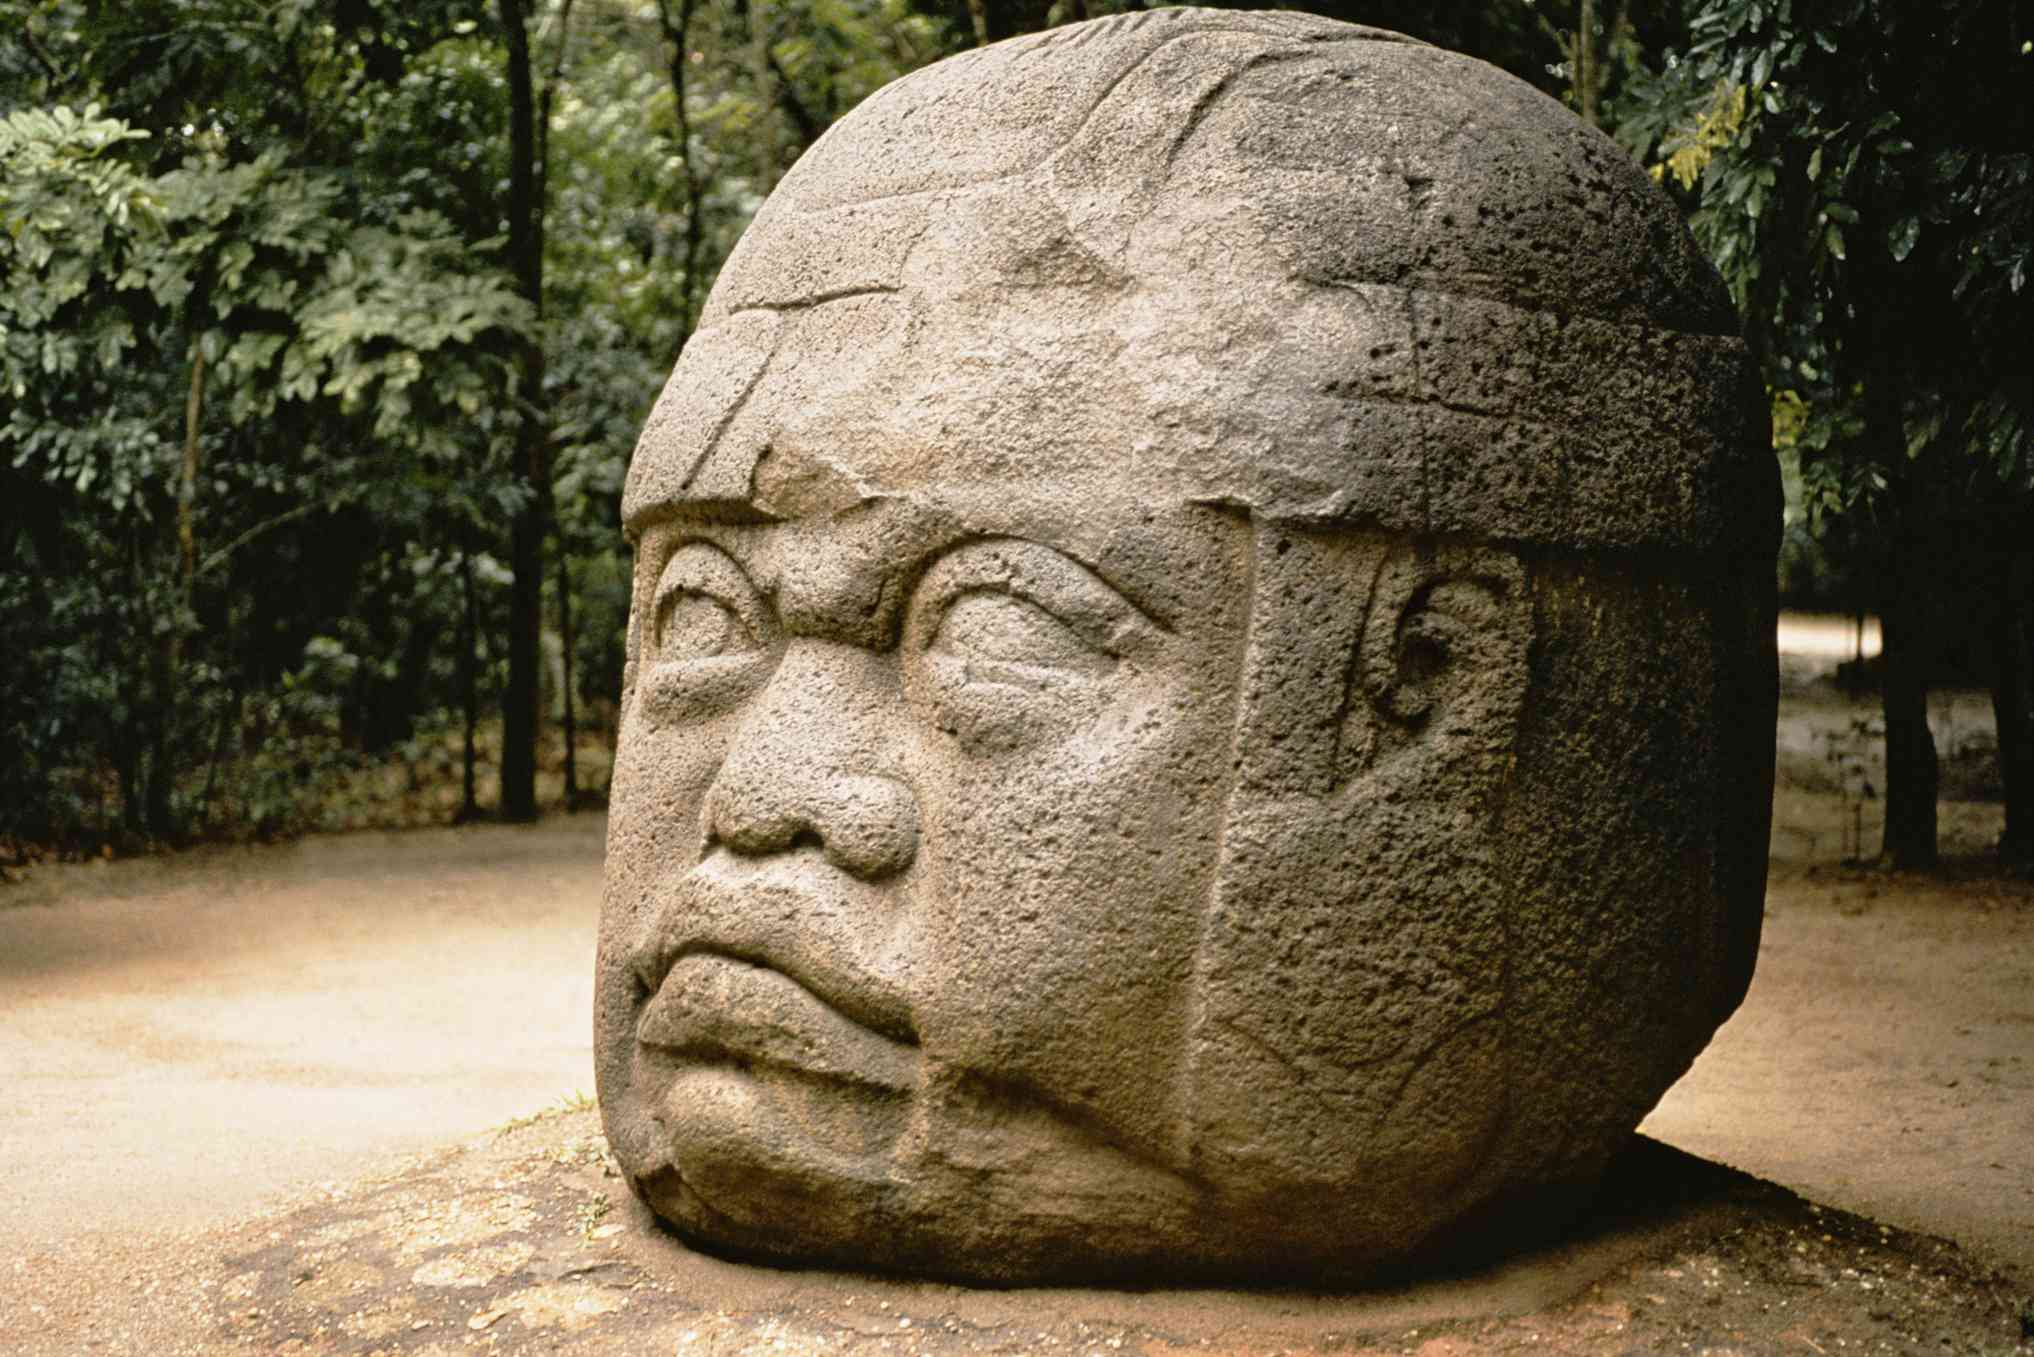 Colossal stone head protruding from ground in Mexico